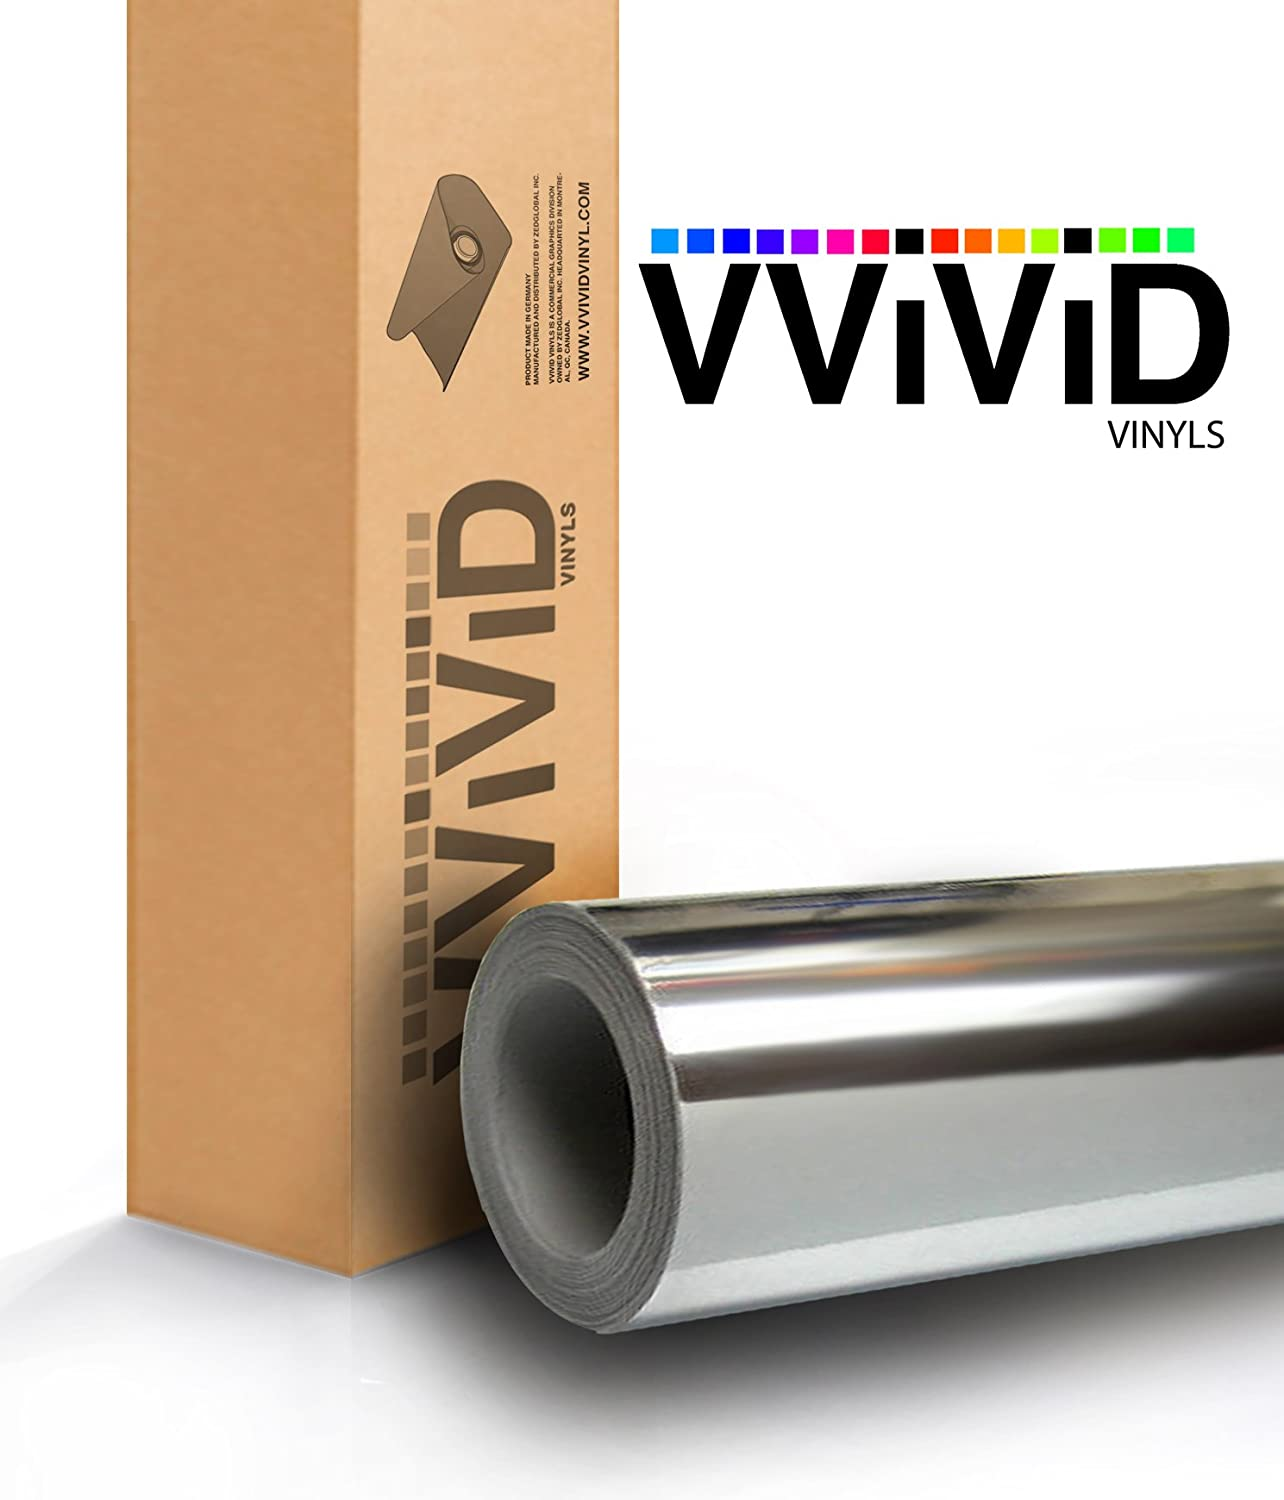 VViViD XPO Silver Chrome 5 Feet x 1 Foot Vinyl Wrap Roll Mirror Finish with Air Release Technology